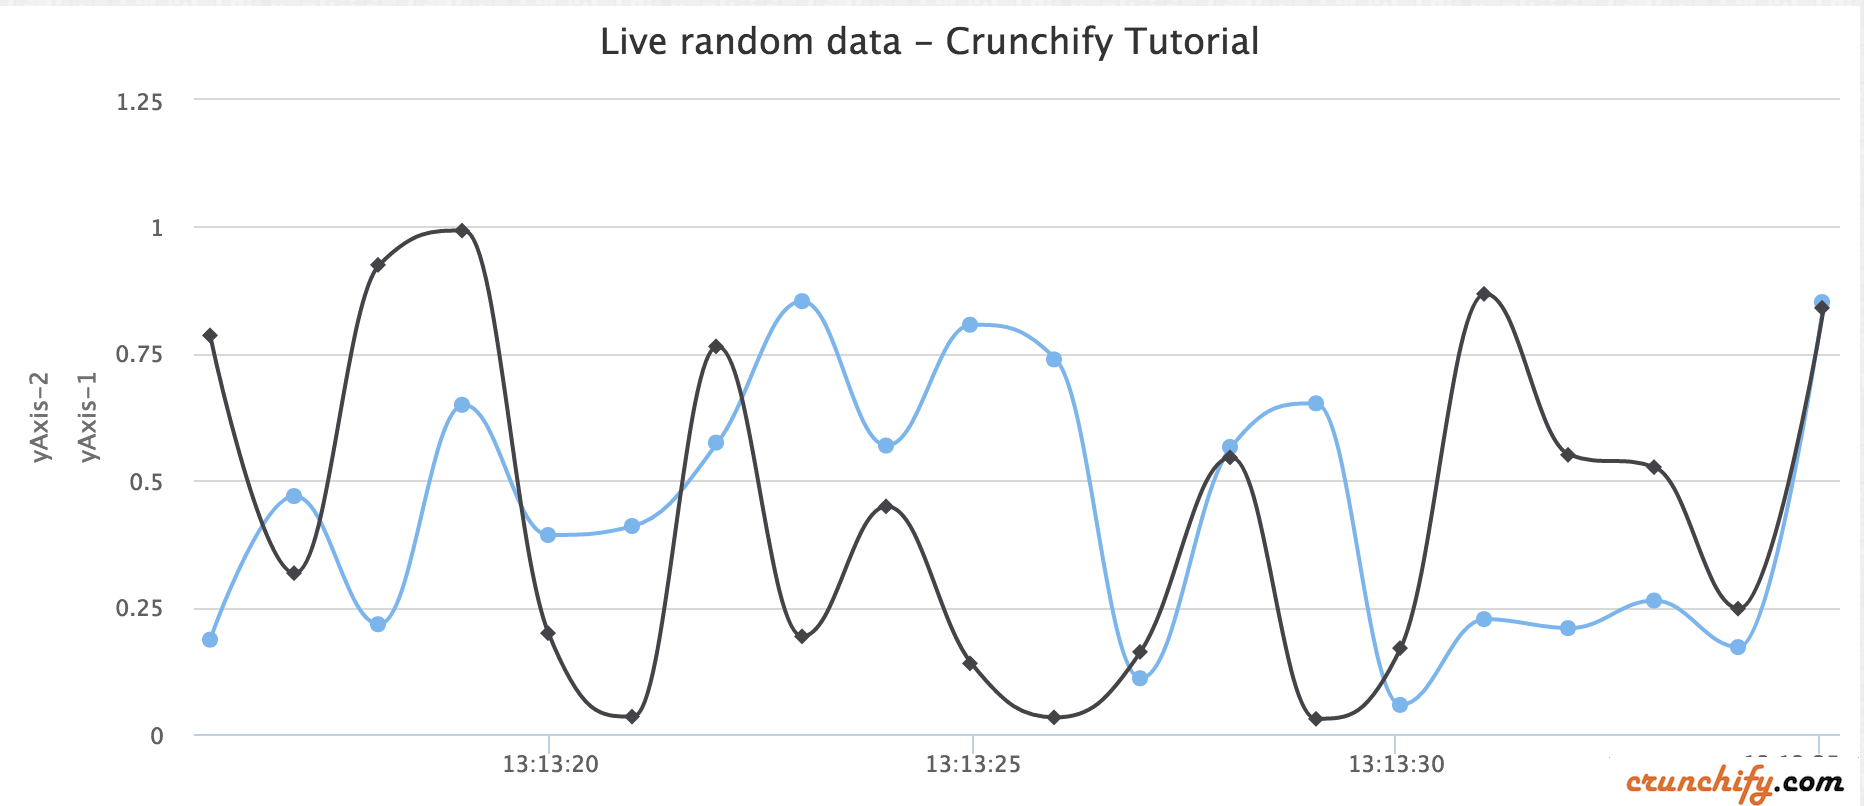 Dynamic Spline HighChart Example with Multiple Y Axis values - Crunchify Tips